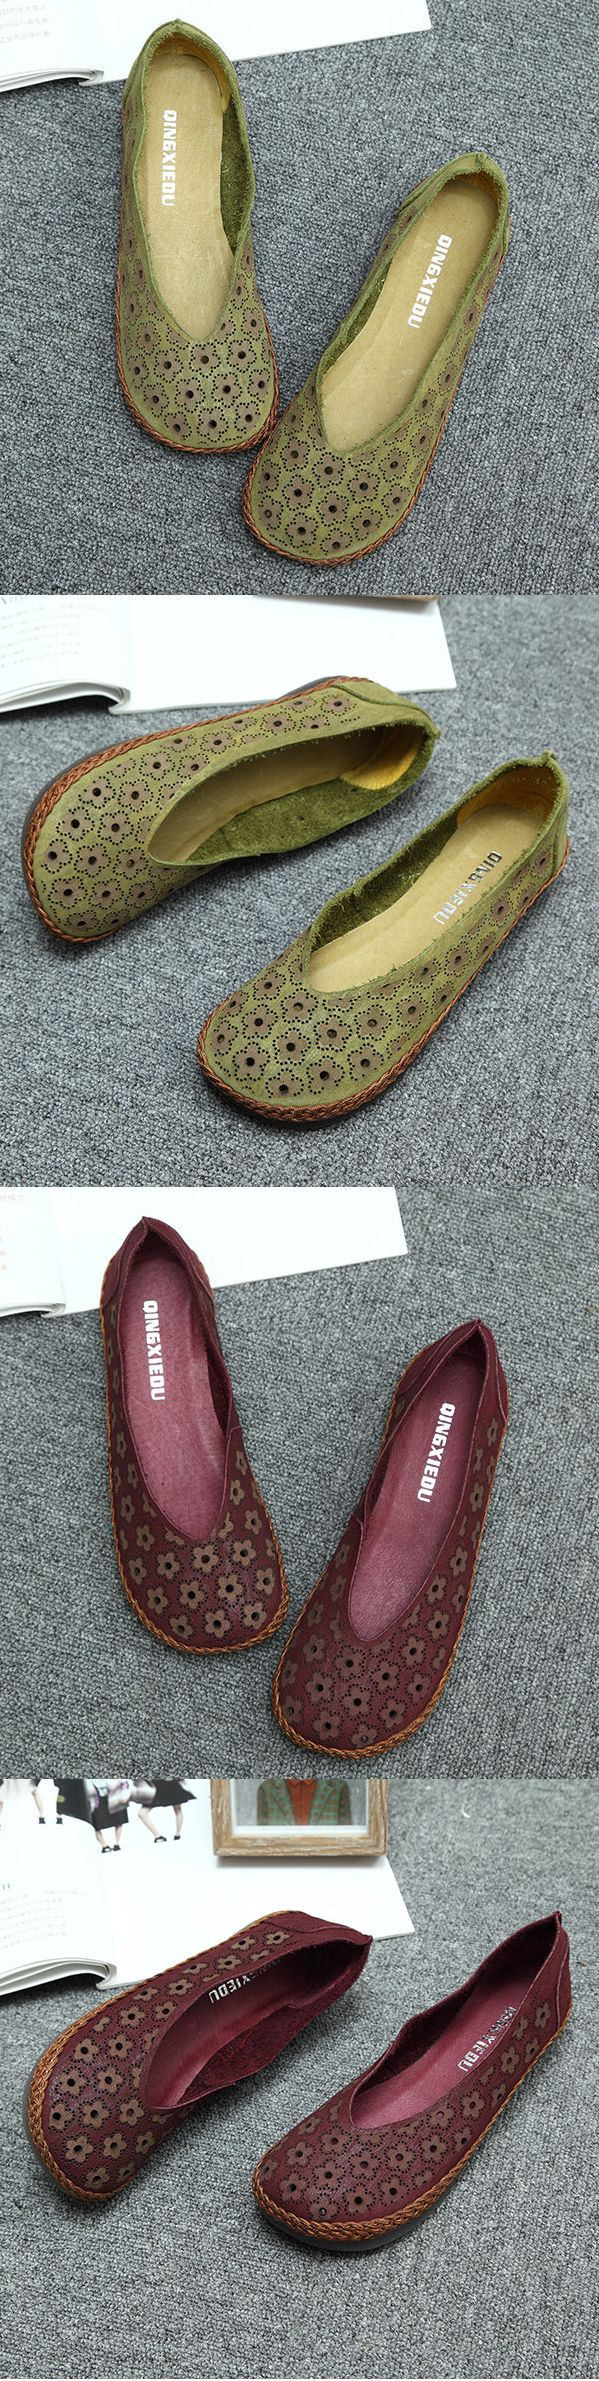 SOCOFY Floral Hollow Out Breathable Flat Loafers